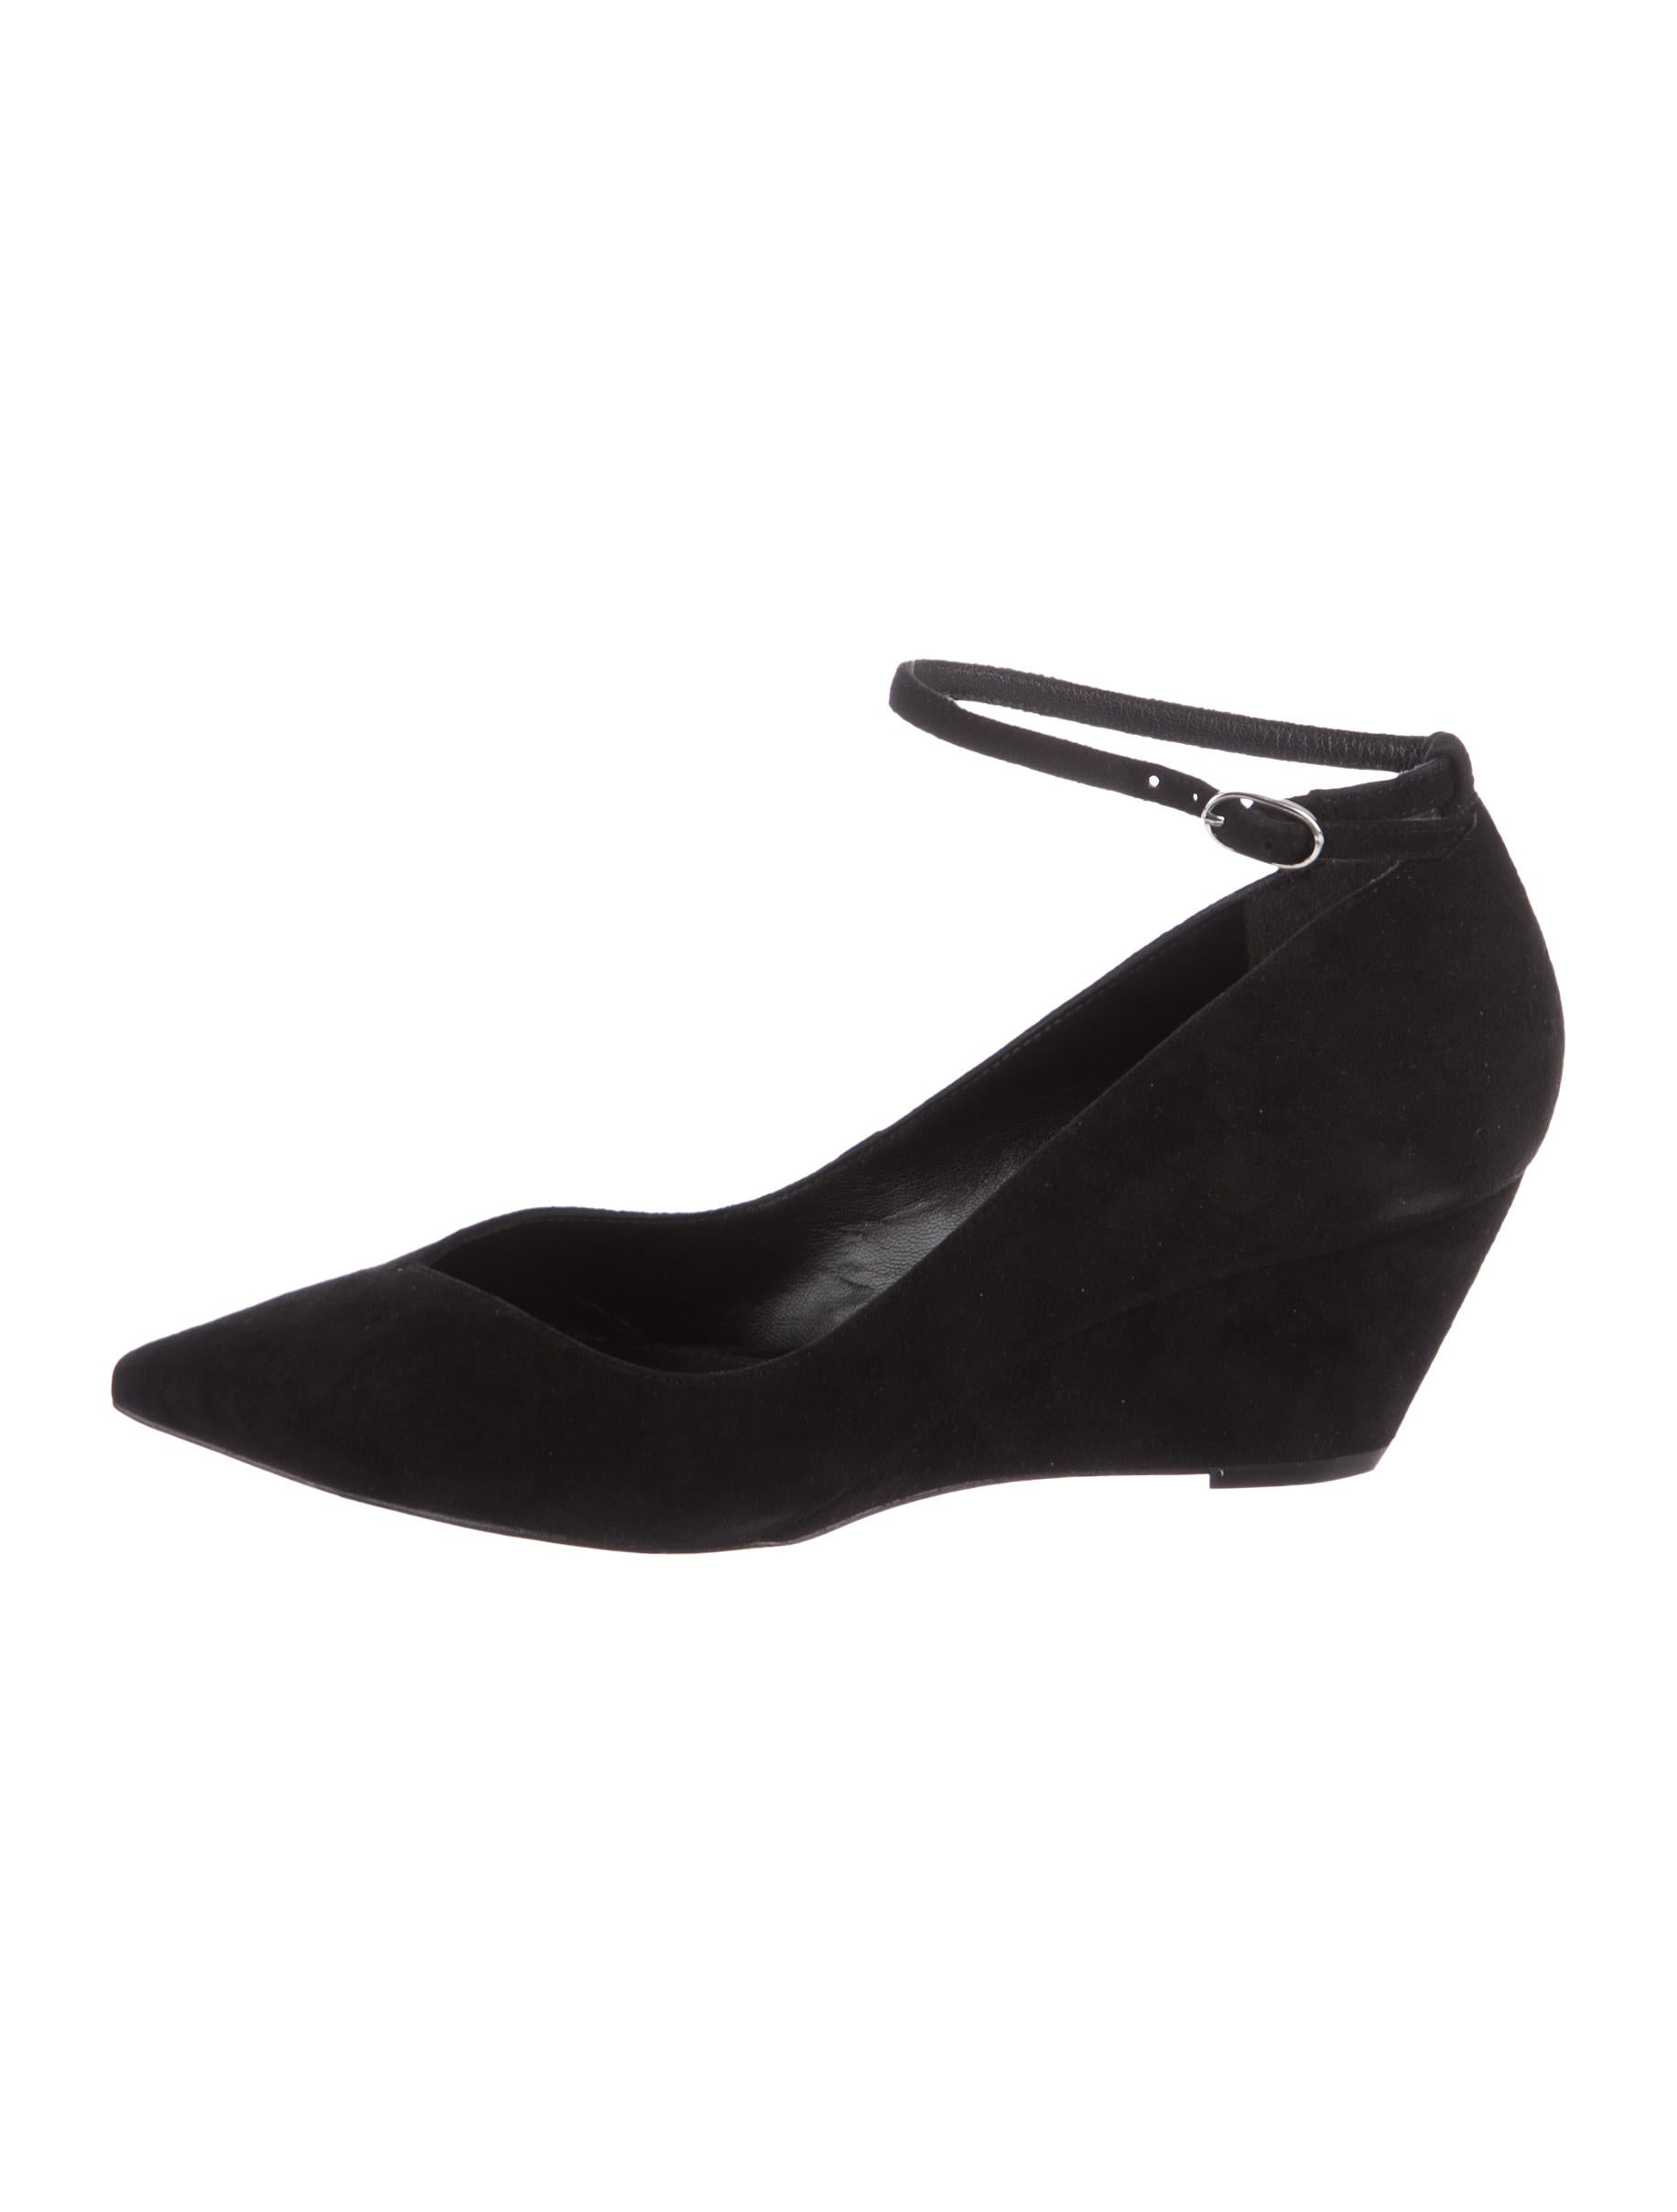 Sigerson Morrison Witty Suede Wedges w/ Tags sale visa payment buy cheap marketable cheap sale wide range of fashion Style cheap online INJ6kcAXo4